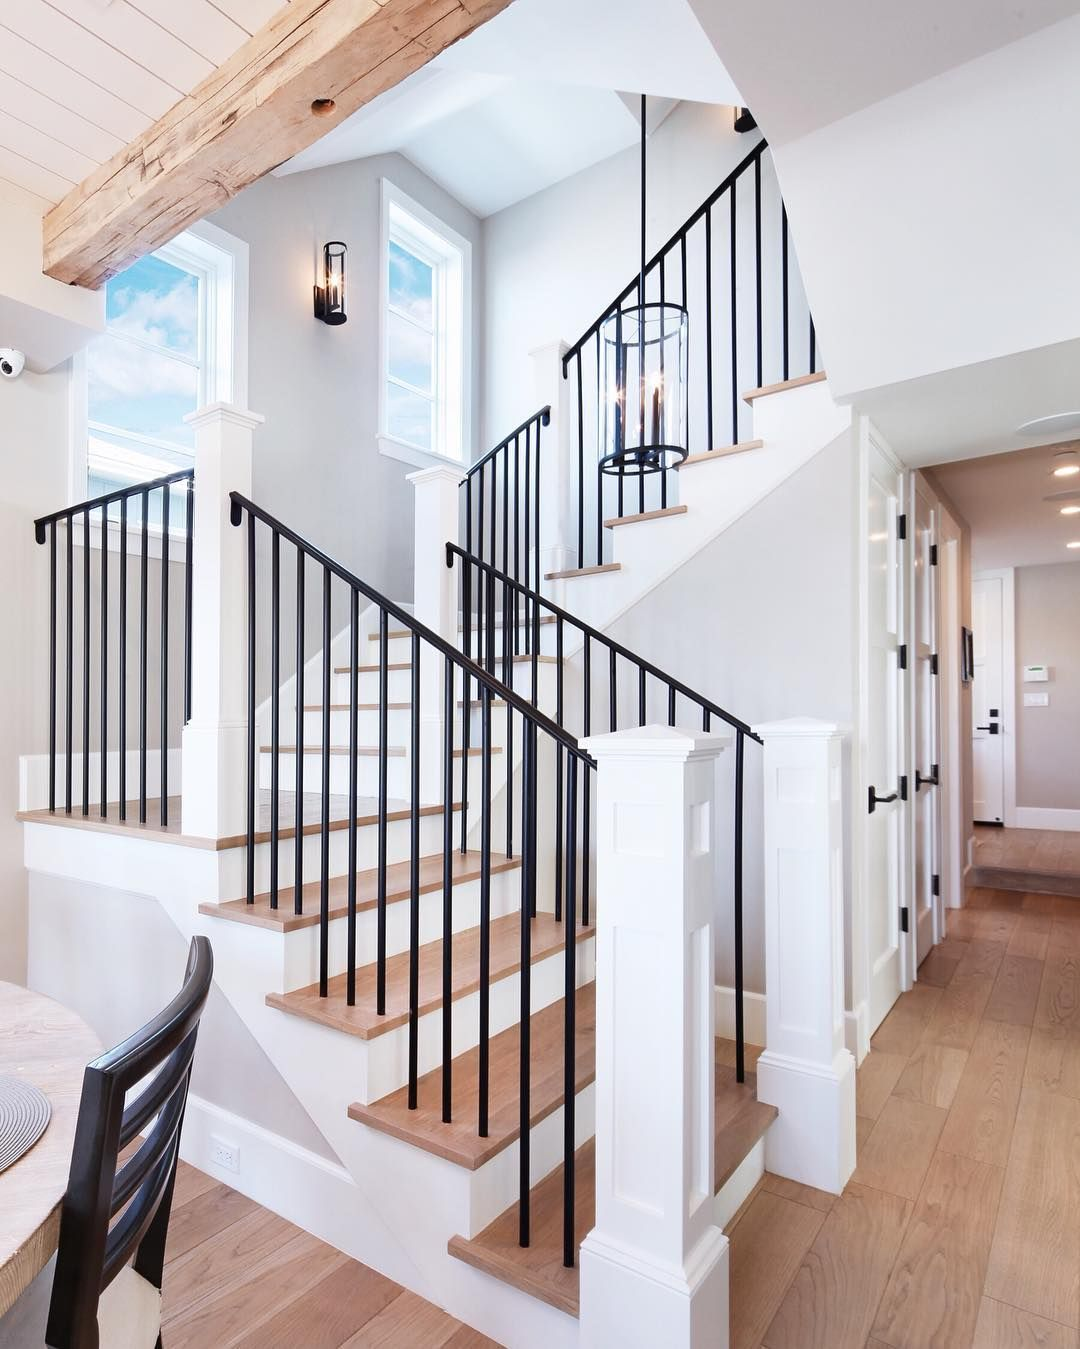 Best Industrial With A Mix Of Comfort For This Wrought Iron Wood Stairwell Home Decor Farmhouse 400 x 300